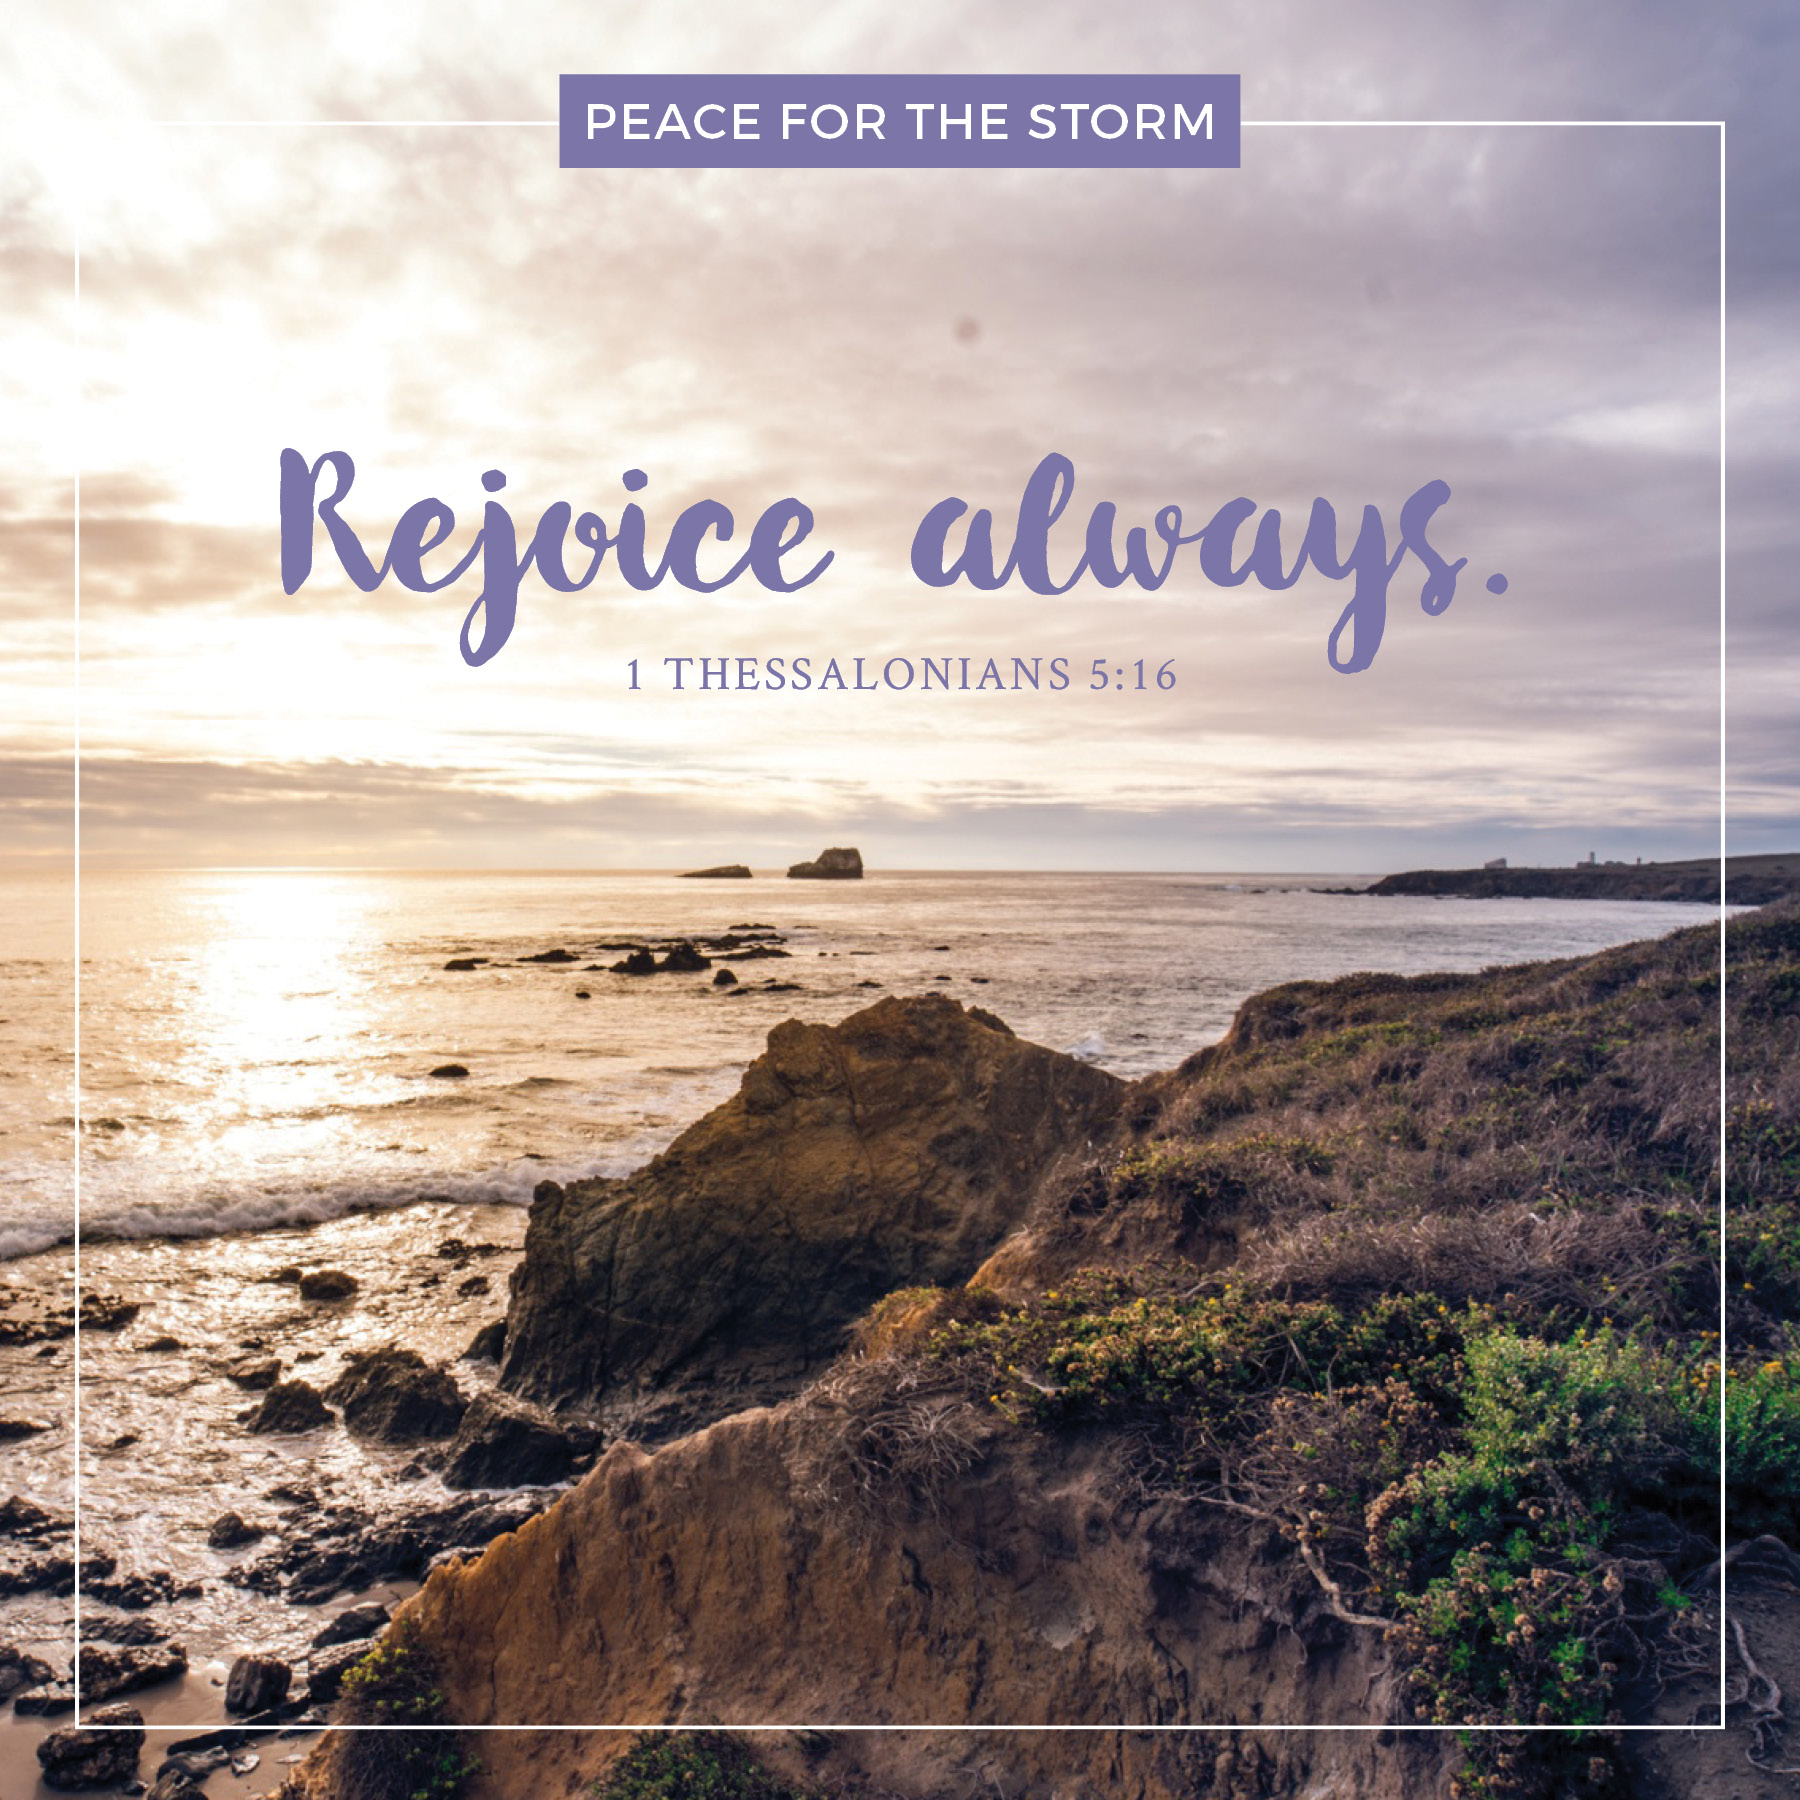 Peace for the Storm Quotes - Rejoice Always